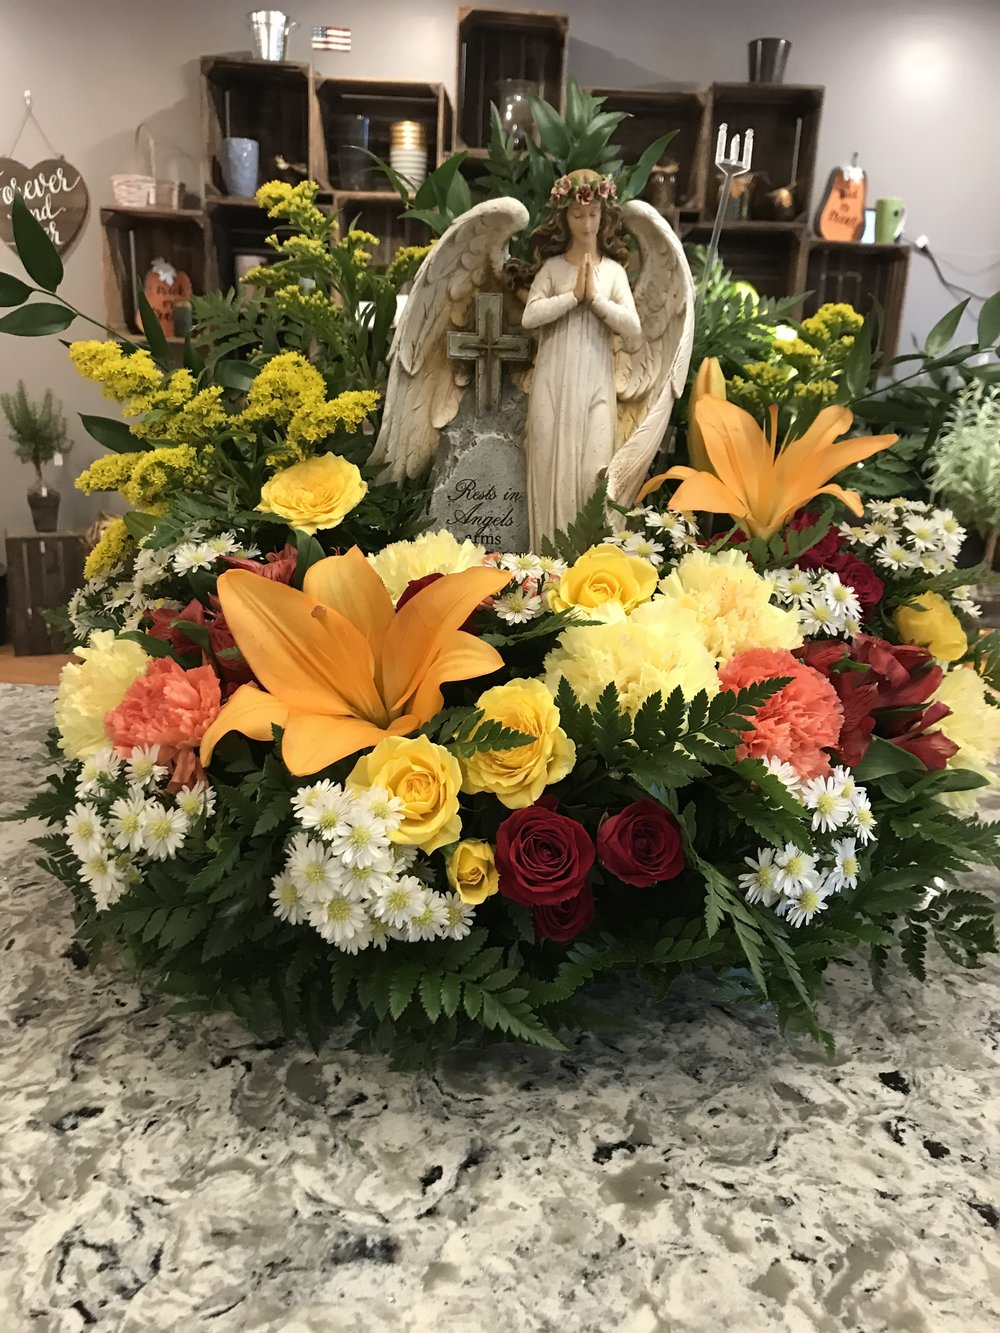 Angel Tribute - $150.00Orange Asiatic Lily, Yellow Spray Rose, Red Spray Rose, Yellow and Orange Carnation, White Monet Casino, Solidago.